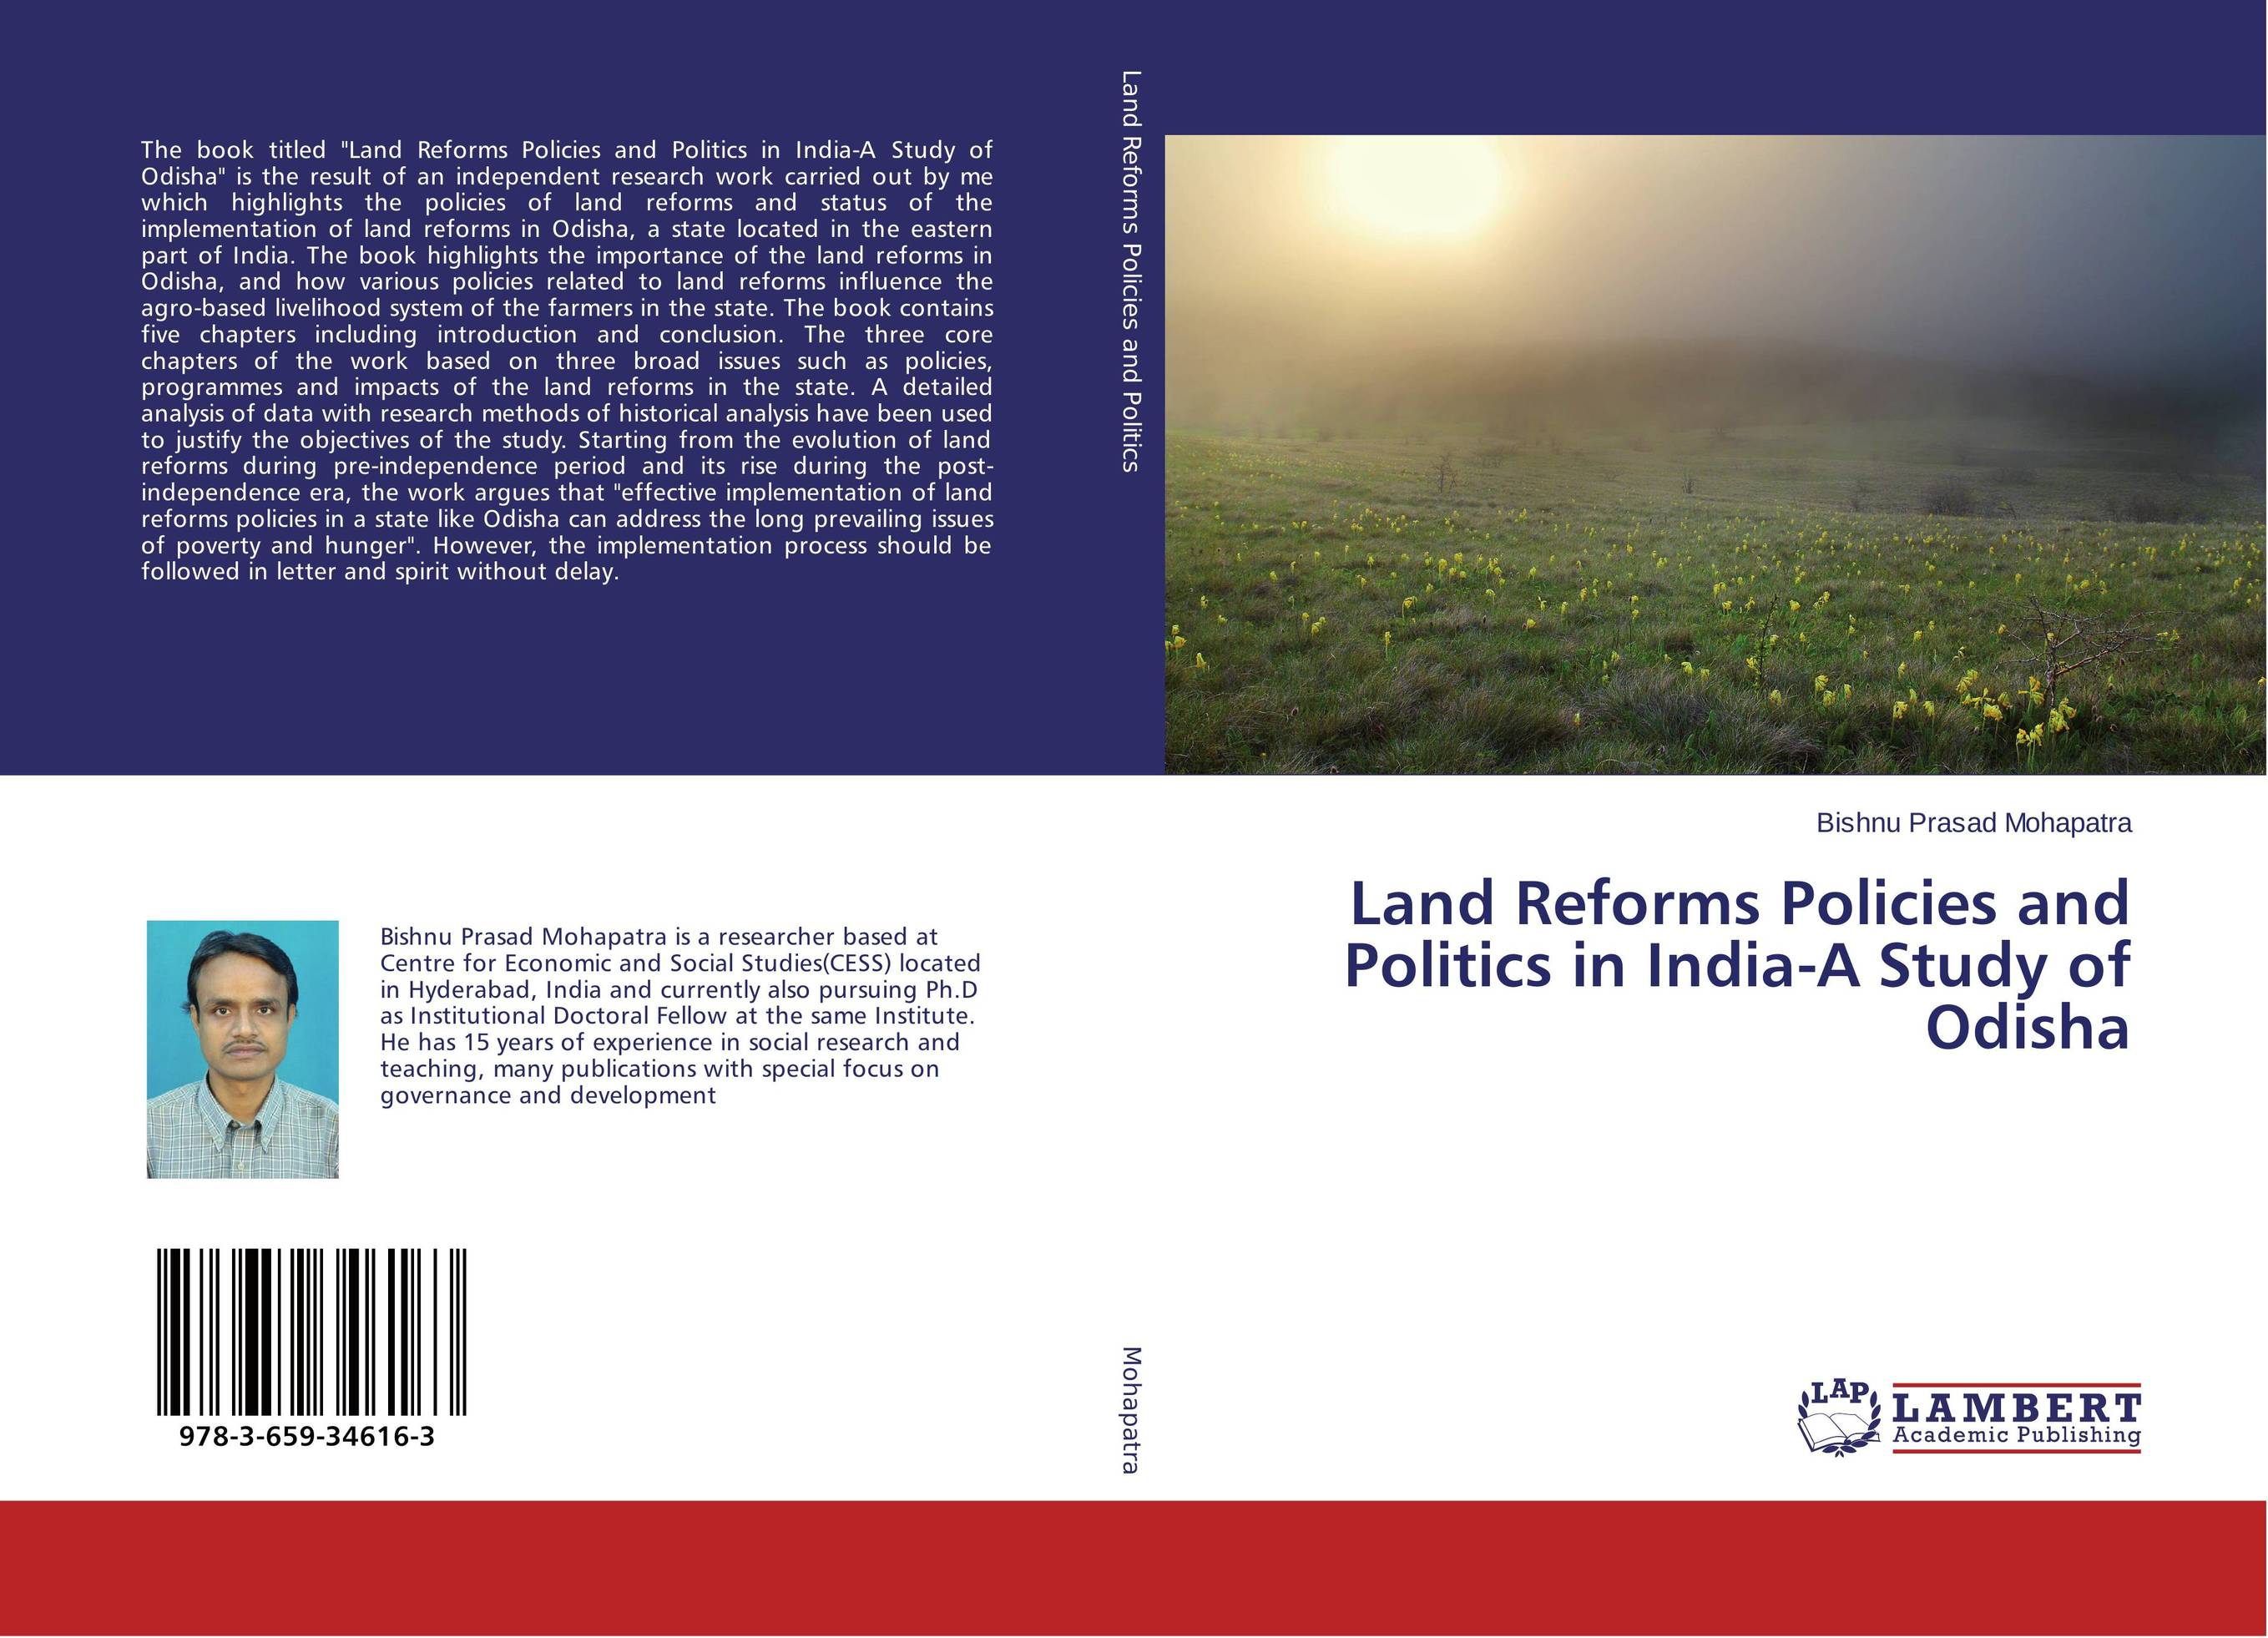 Land Reforms Policies and Politics in India-A Study of Odisha